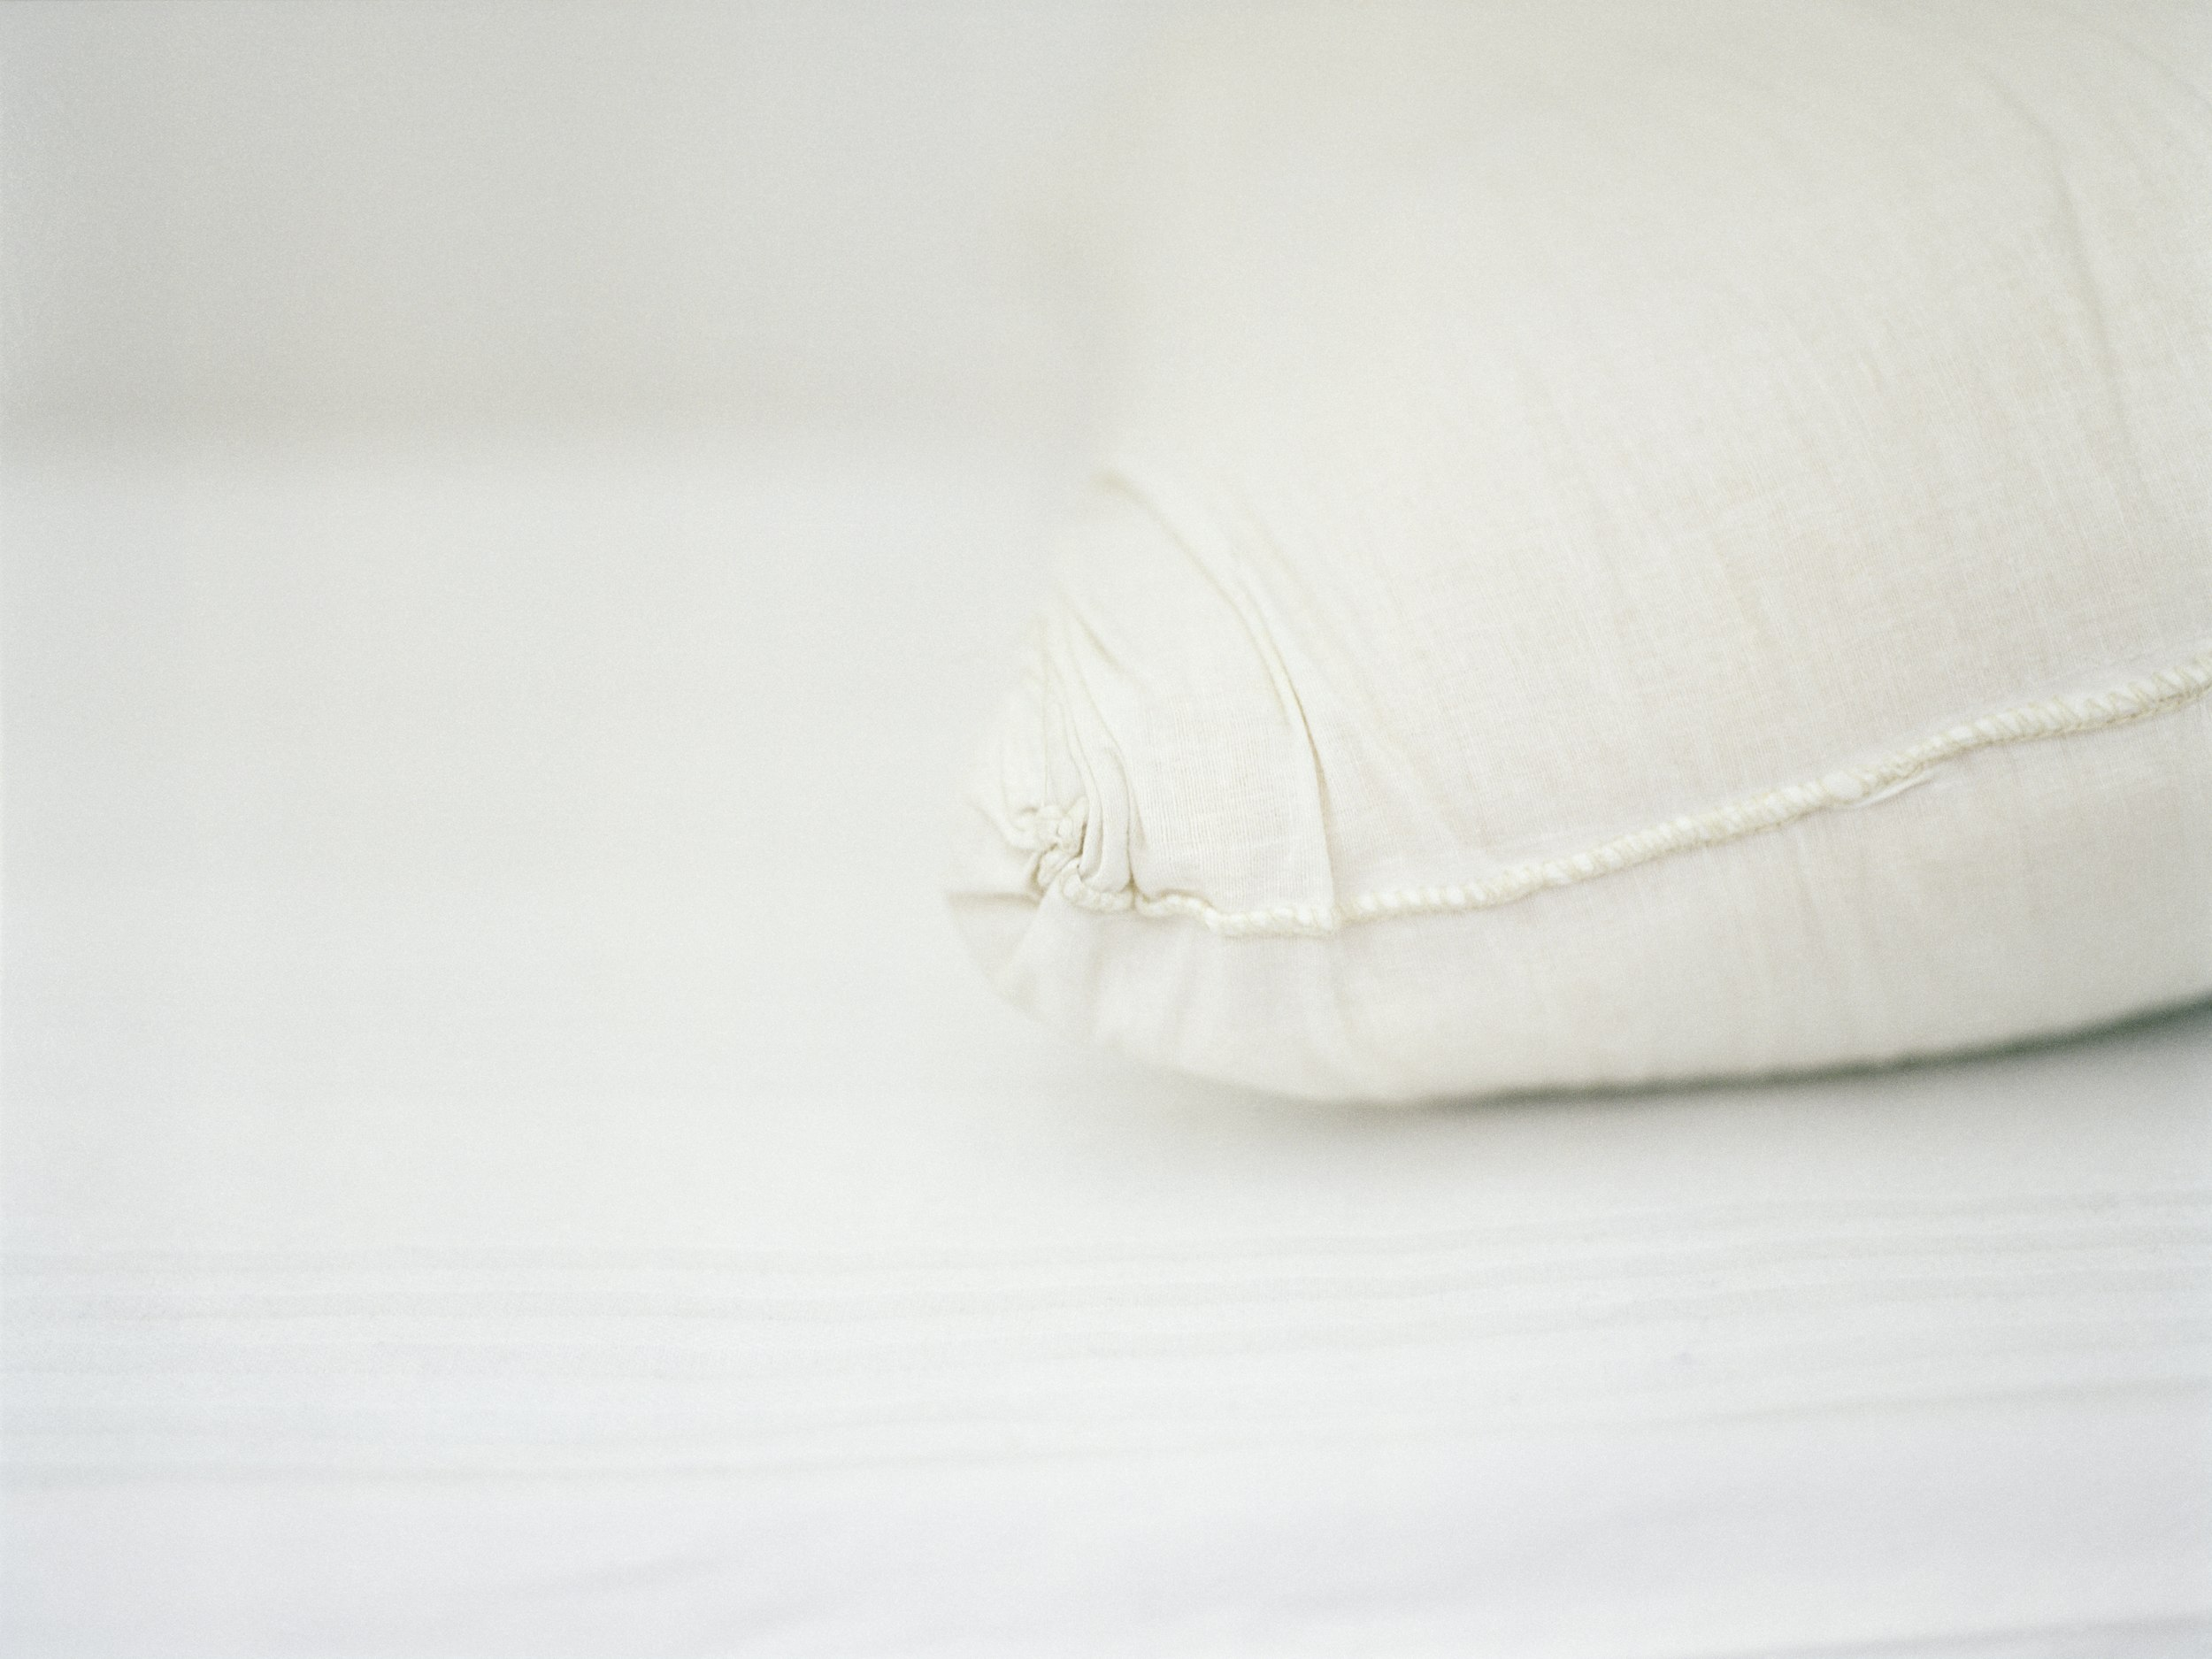 Stendhal Syndrome (Pillow),  48x64in, C-Print, 2007